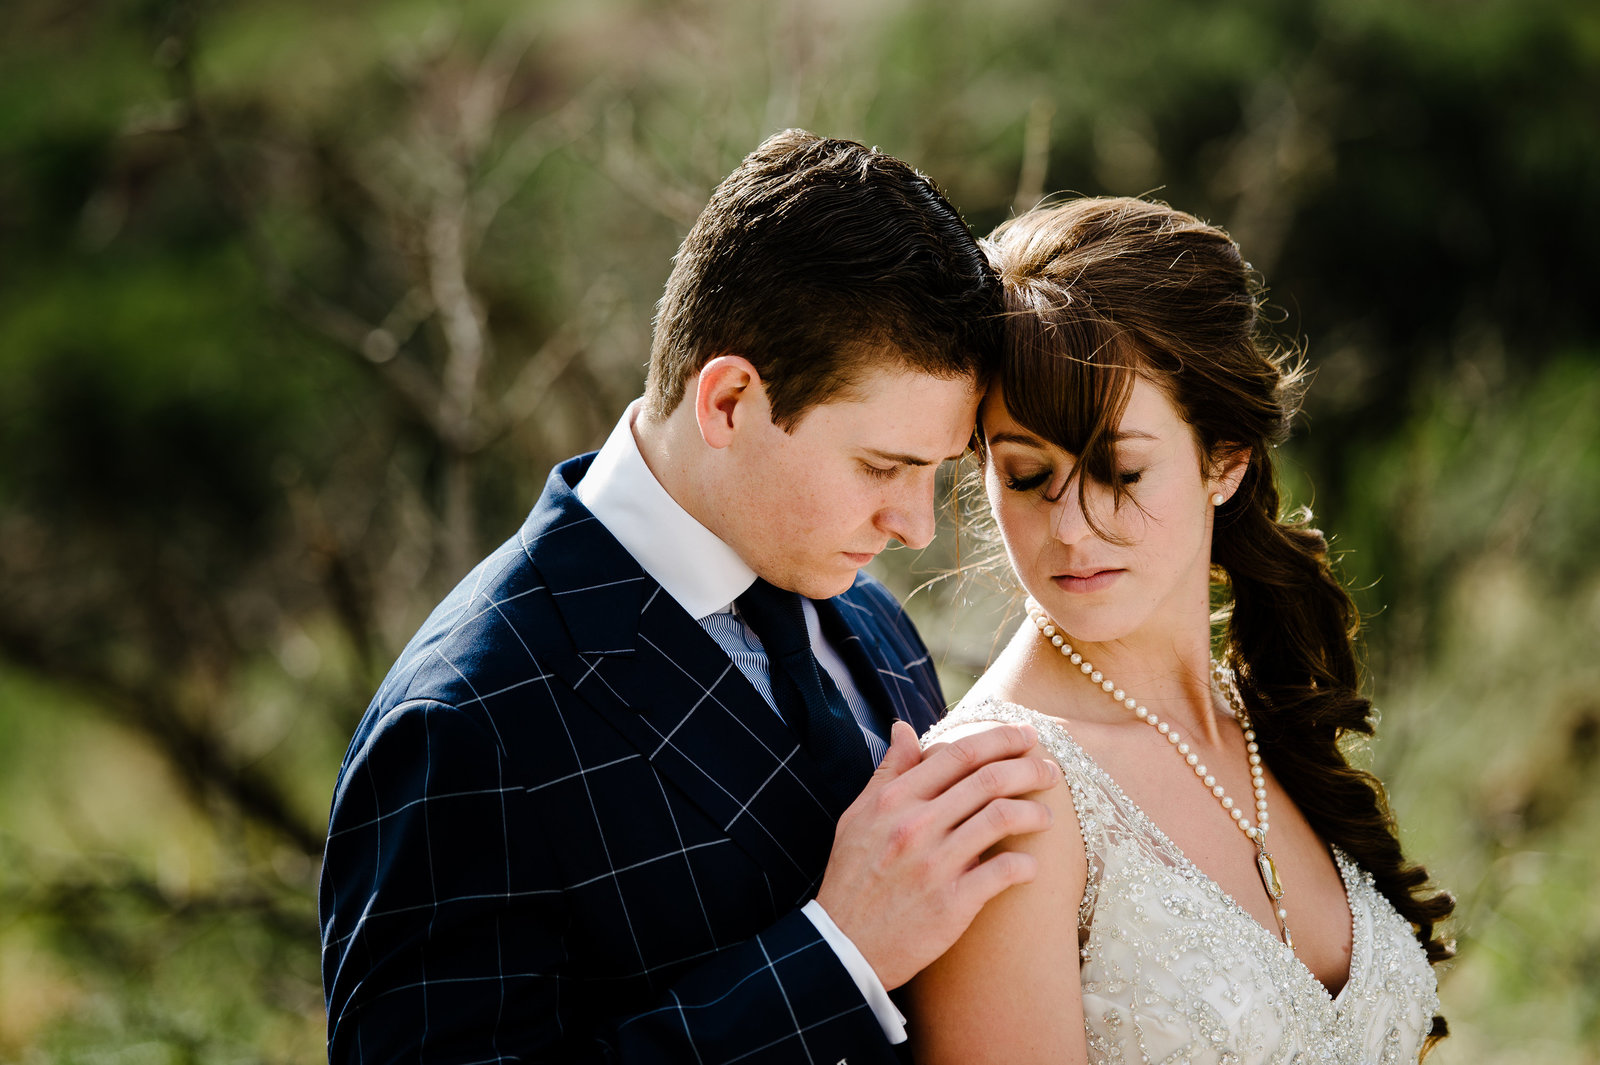 296-El-paso-wedding-photographer-El Paso Wedding Photographer_P54